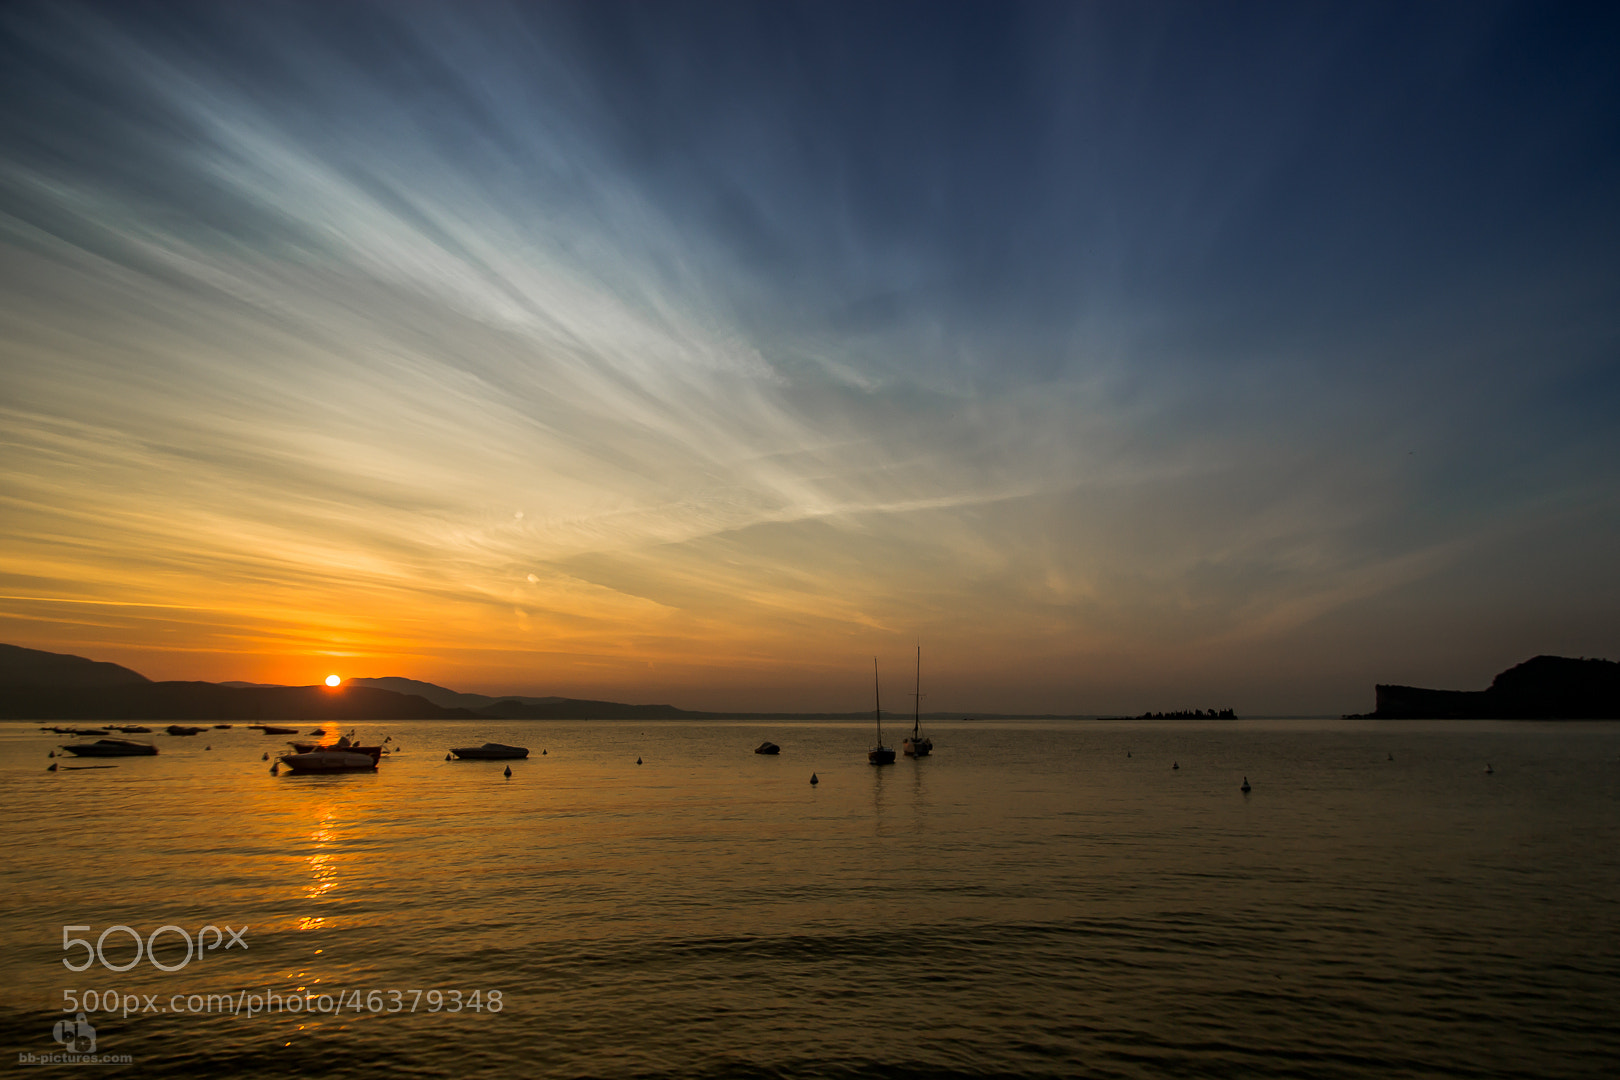 Photograph Gardamagic by bb-pictures I bb-pictures I on 500px